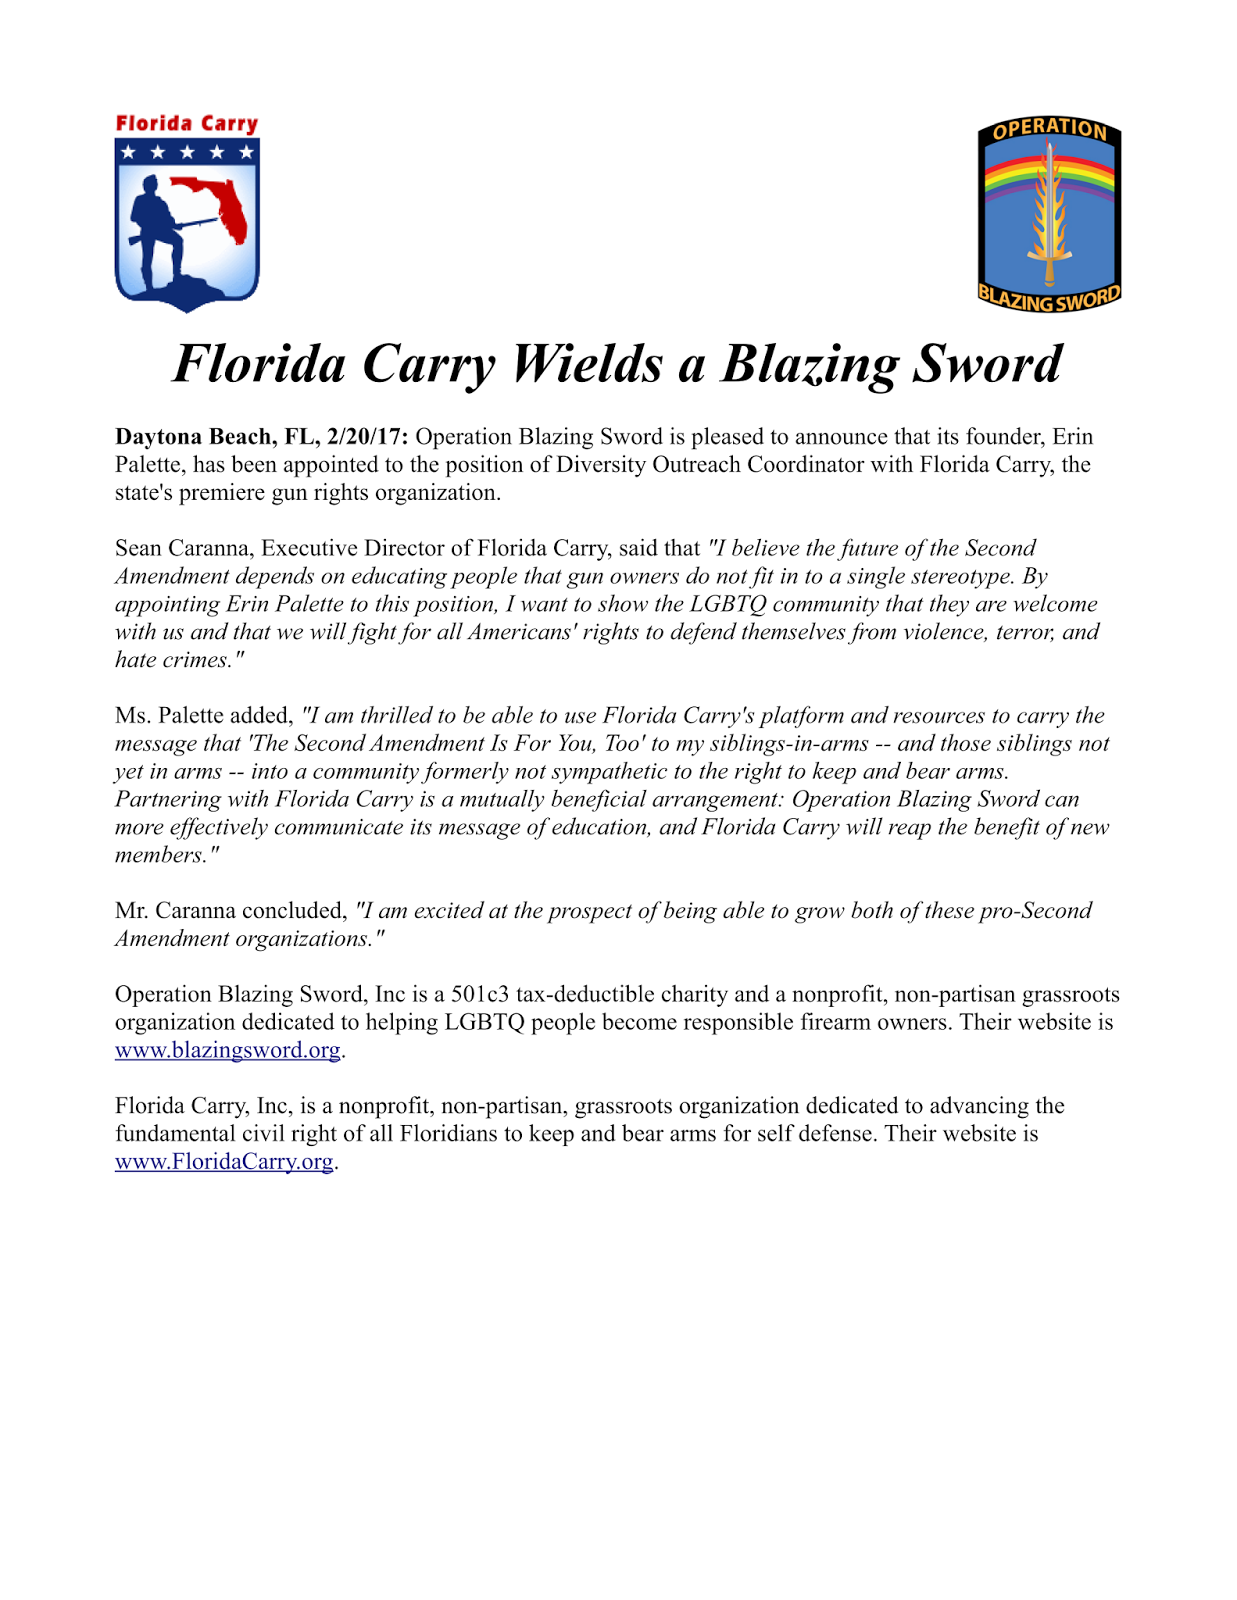 Florida Carry Wields a Blazing Sword